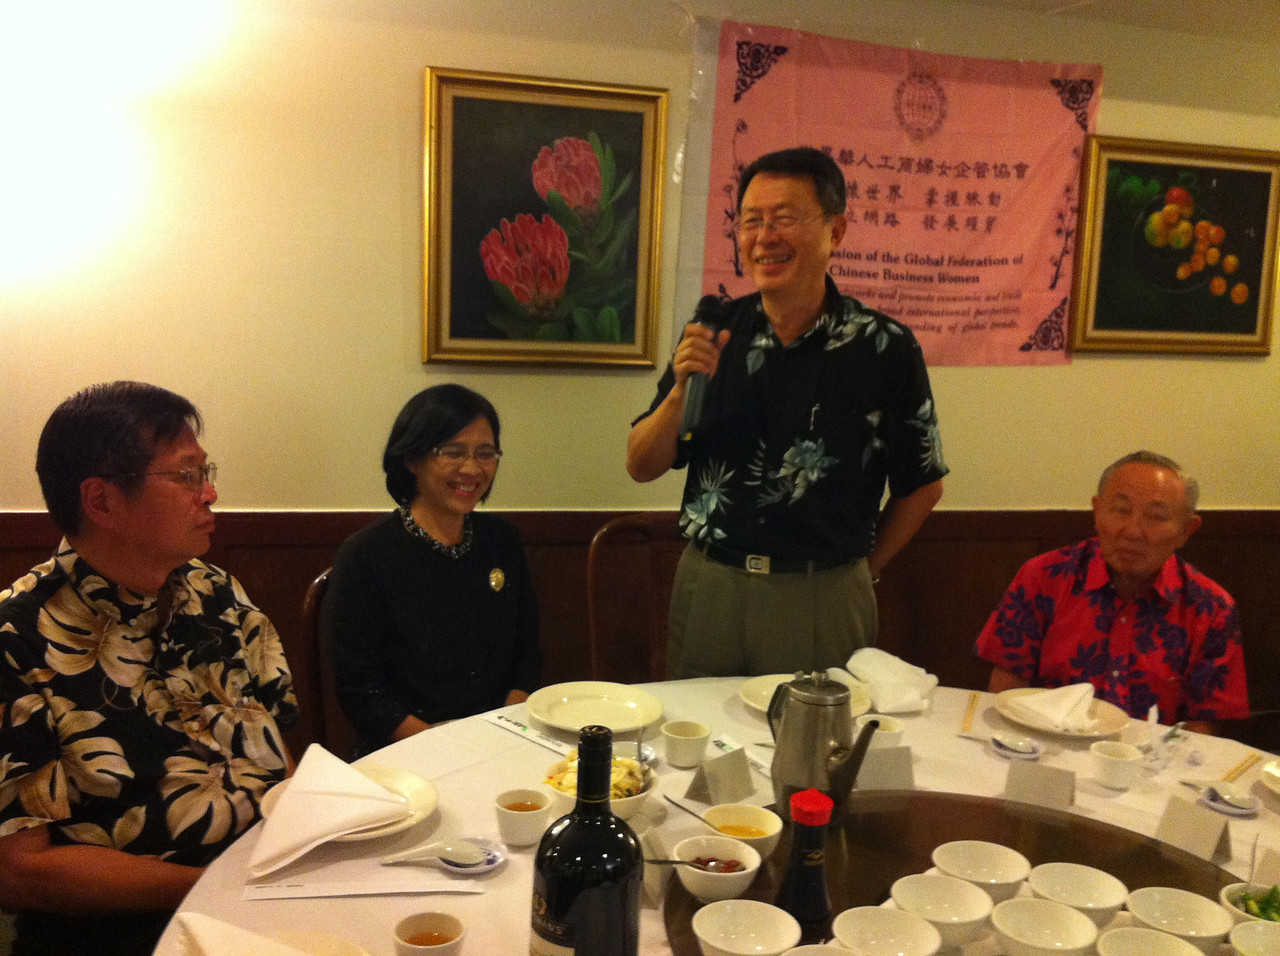 Director General V C Chu giving speech.  Dr. Yang - Sherry & Mr. Chu - Dr. Che